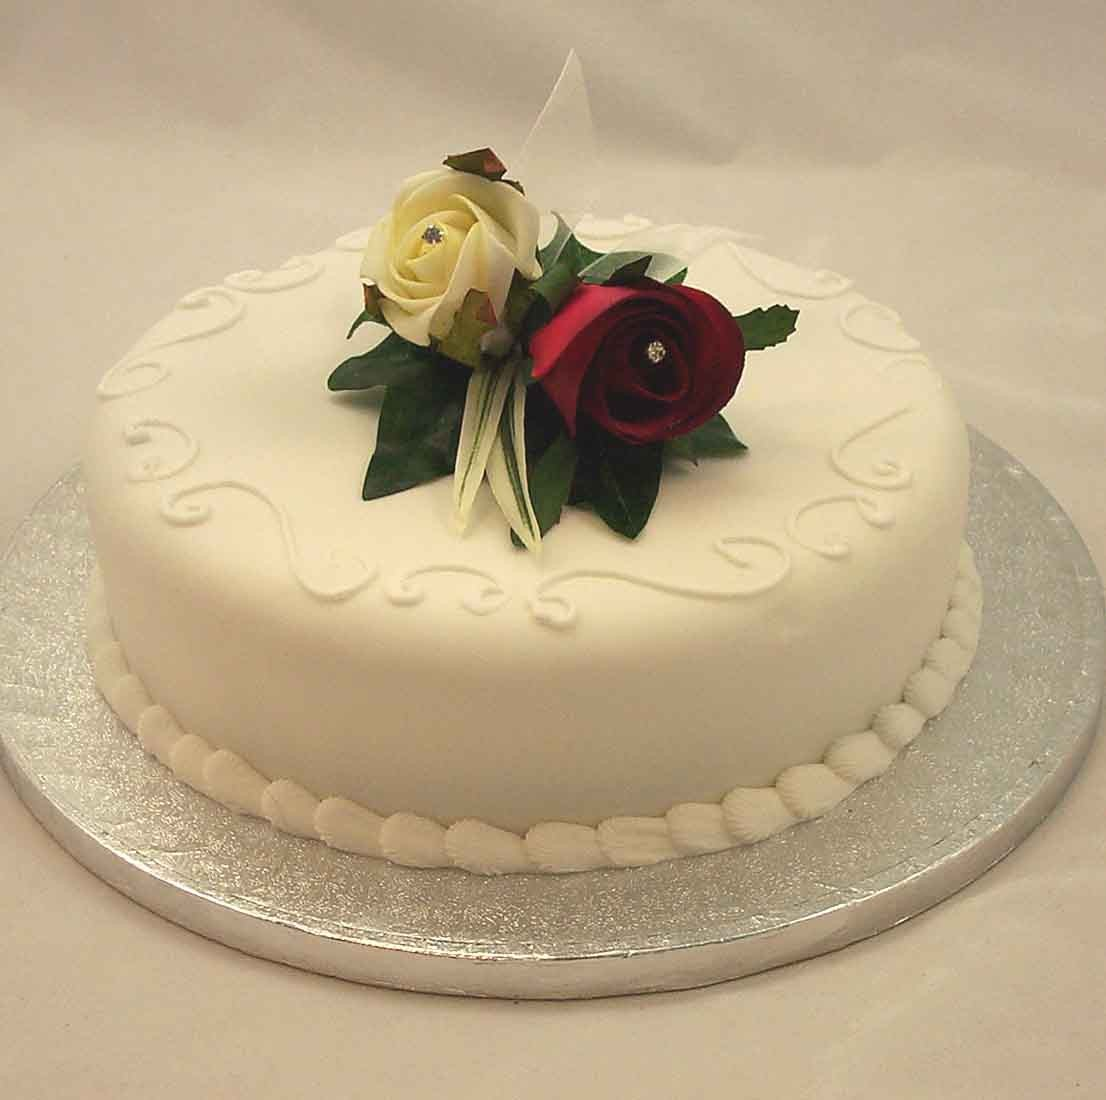 Cake Decorations - Burgundy & Ivory Rose Corsage Cake Topper - Silk ...